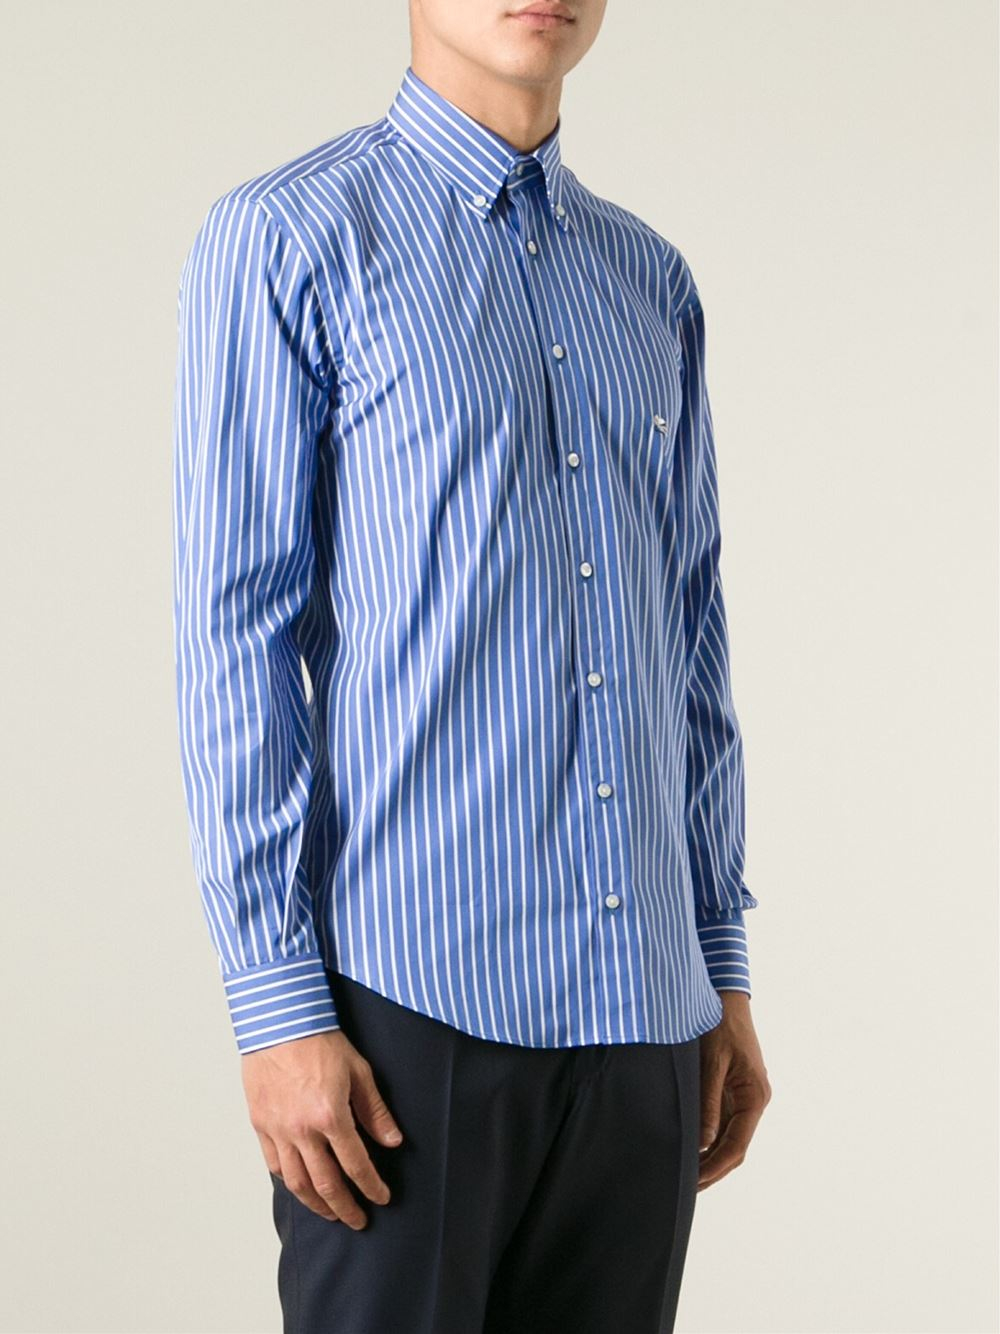 Etro Striped Button Down Shirt In Blue For Men Lyst